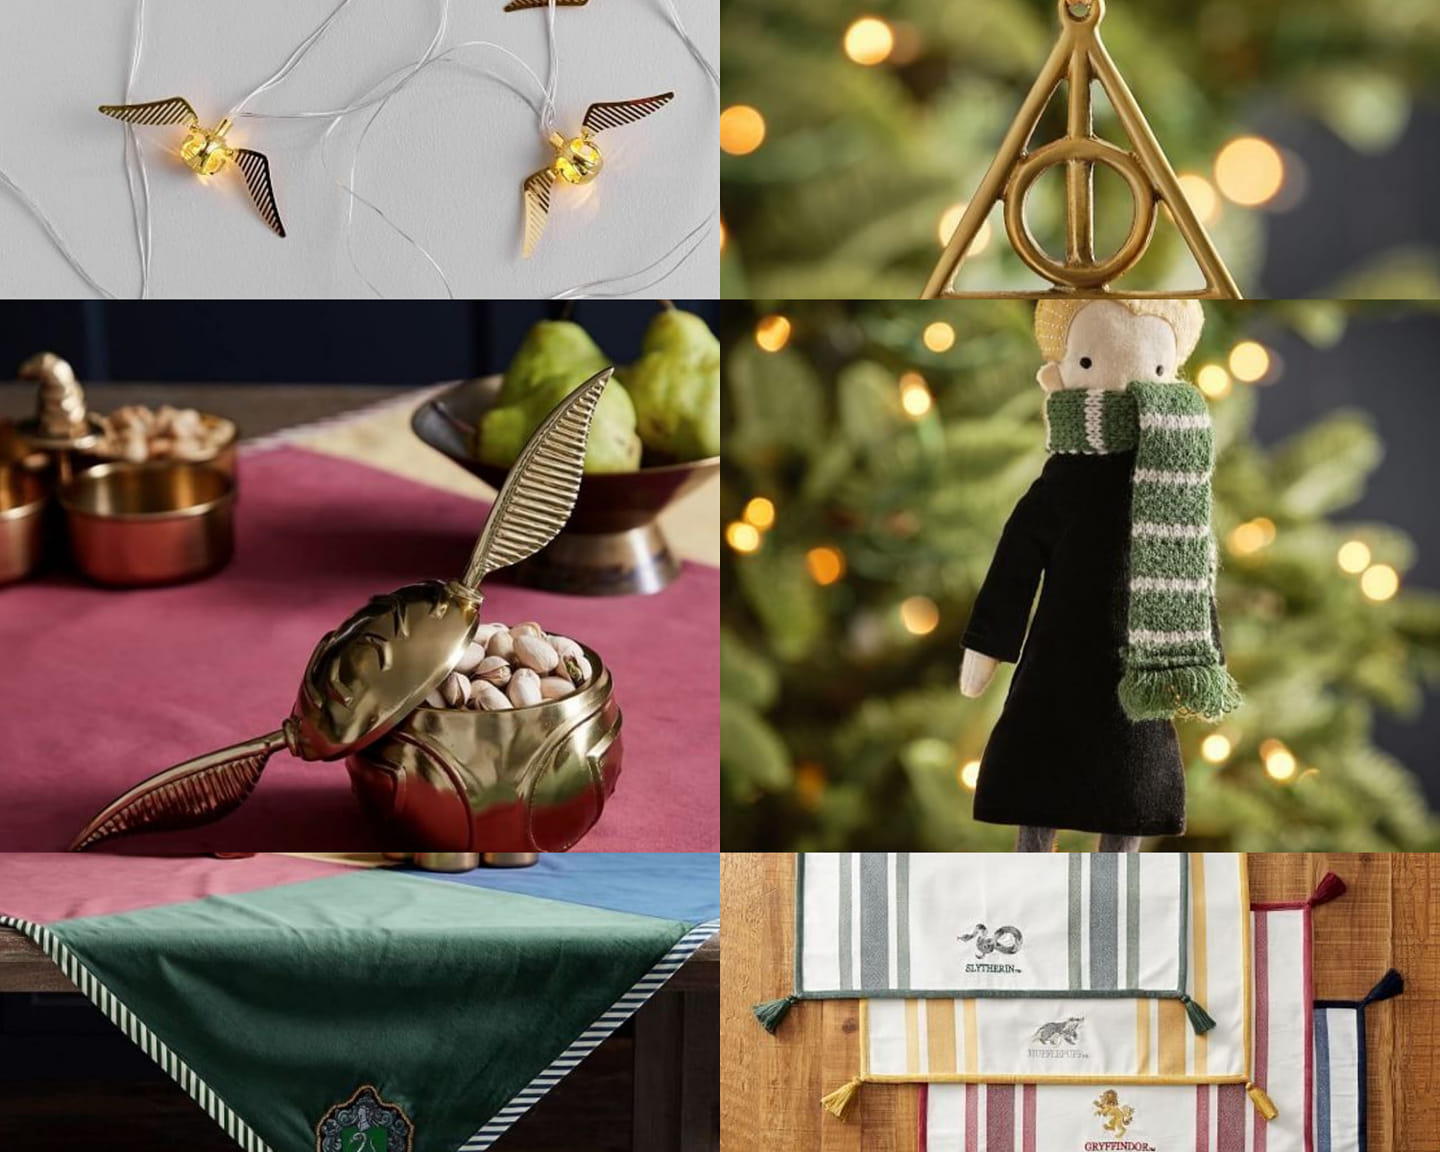 Pottery Barn Launches New Harry Potter Line Just In Time For